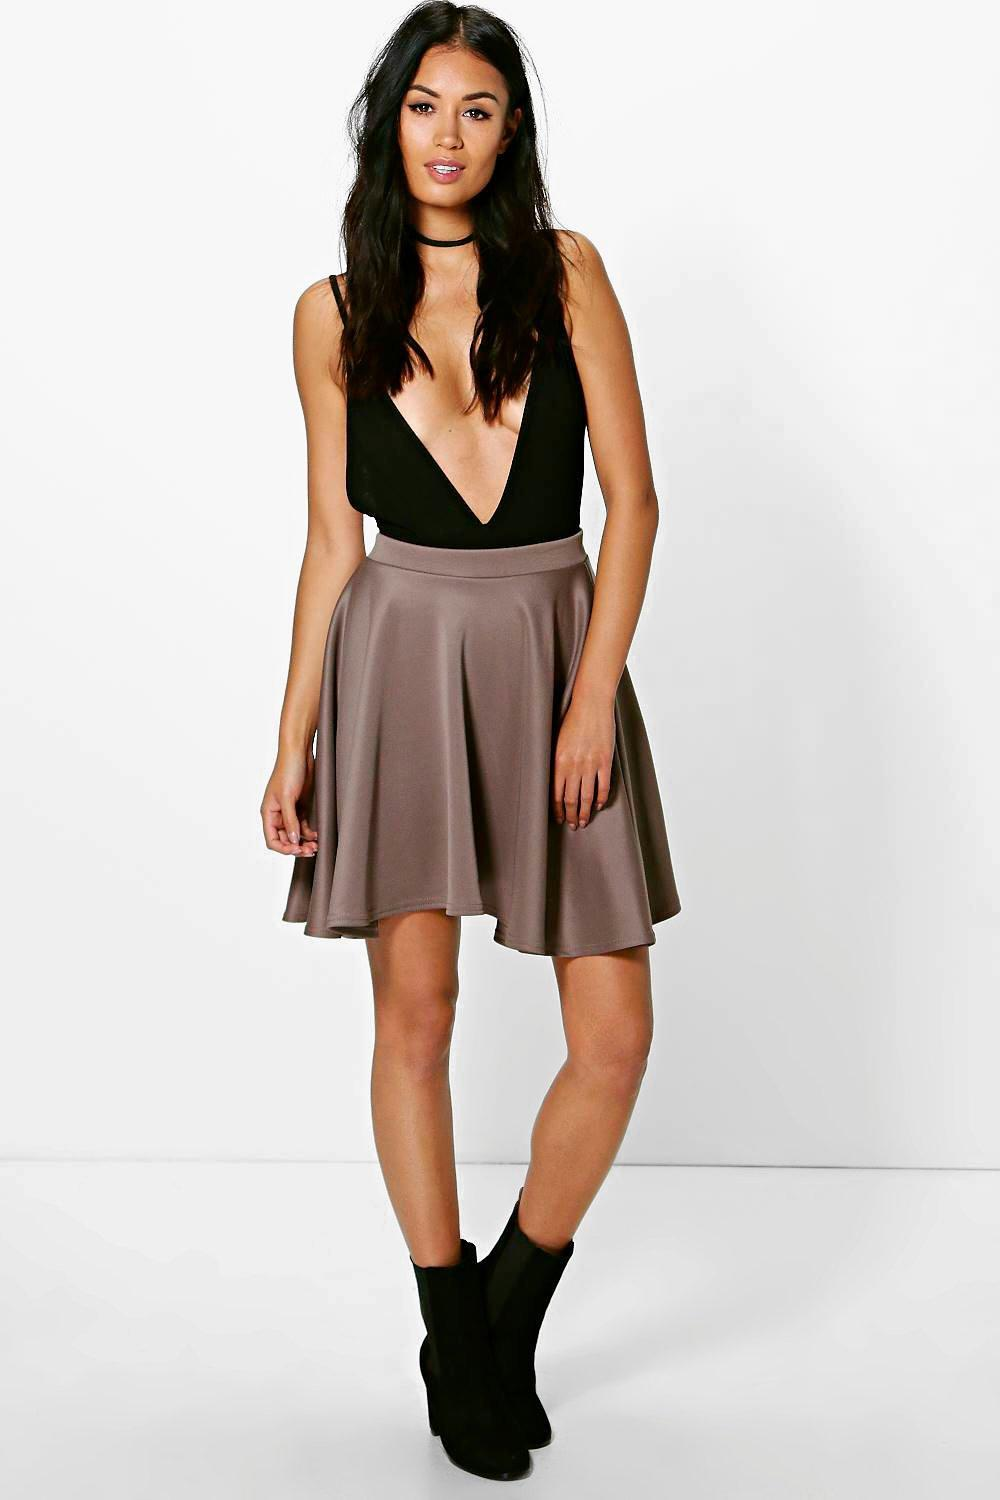 598083a09 Gallery. Previously sold at: Boohoo · Women's Skater Skirts ...